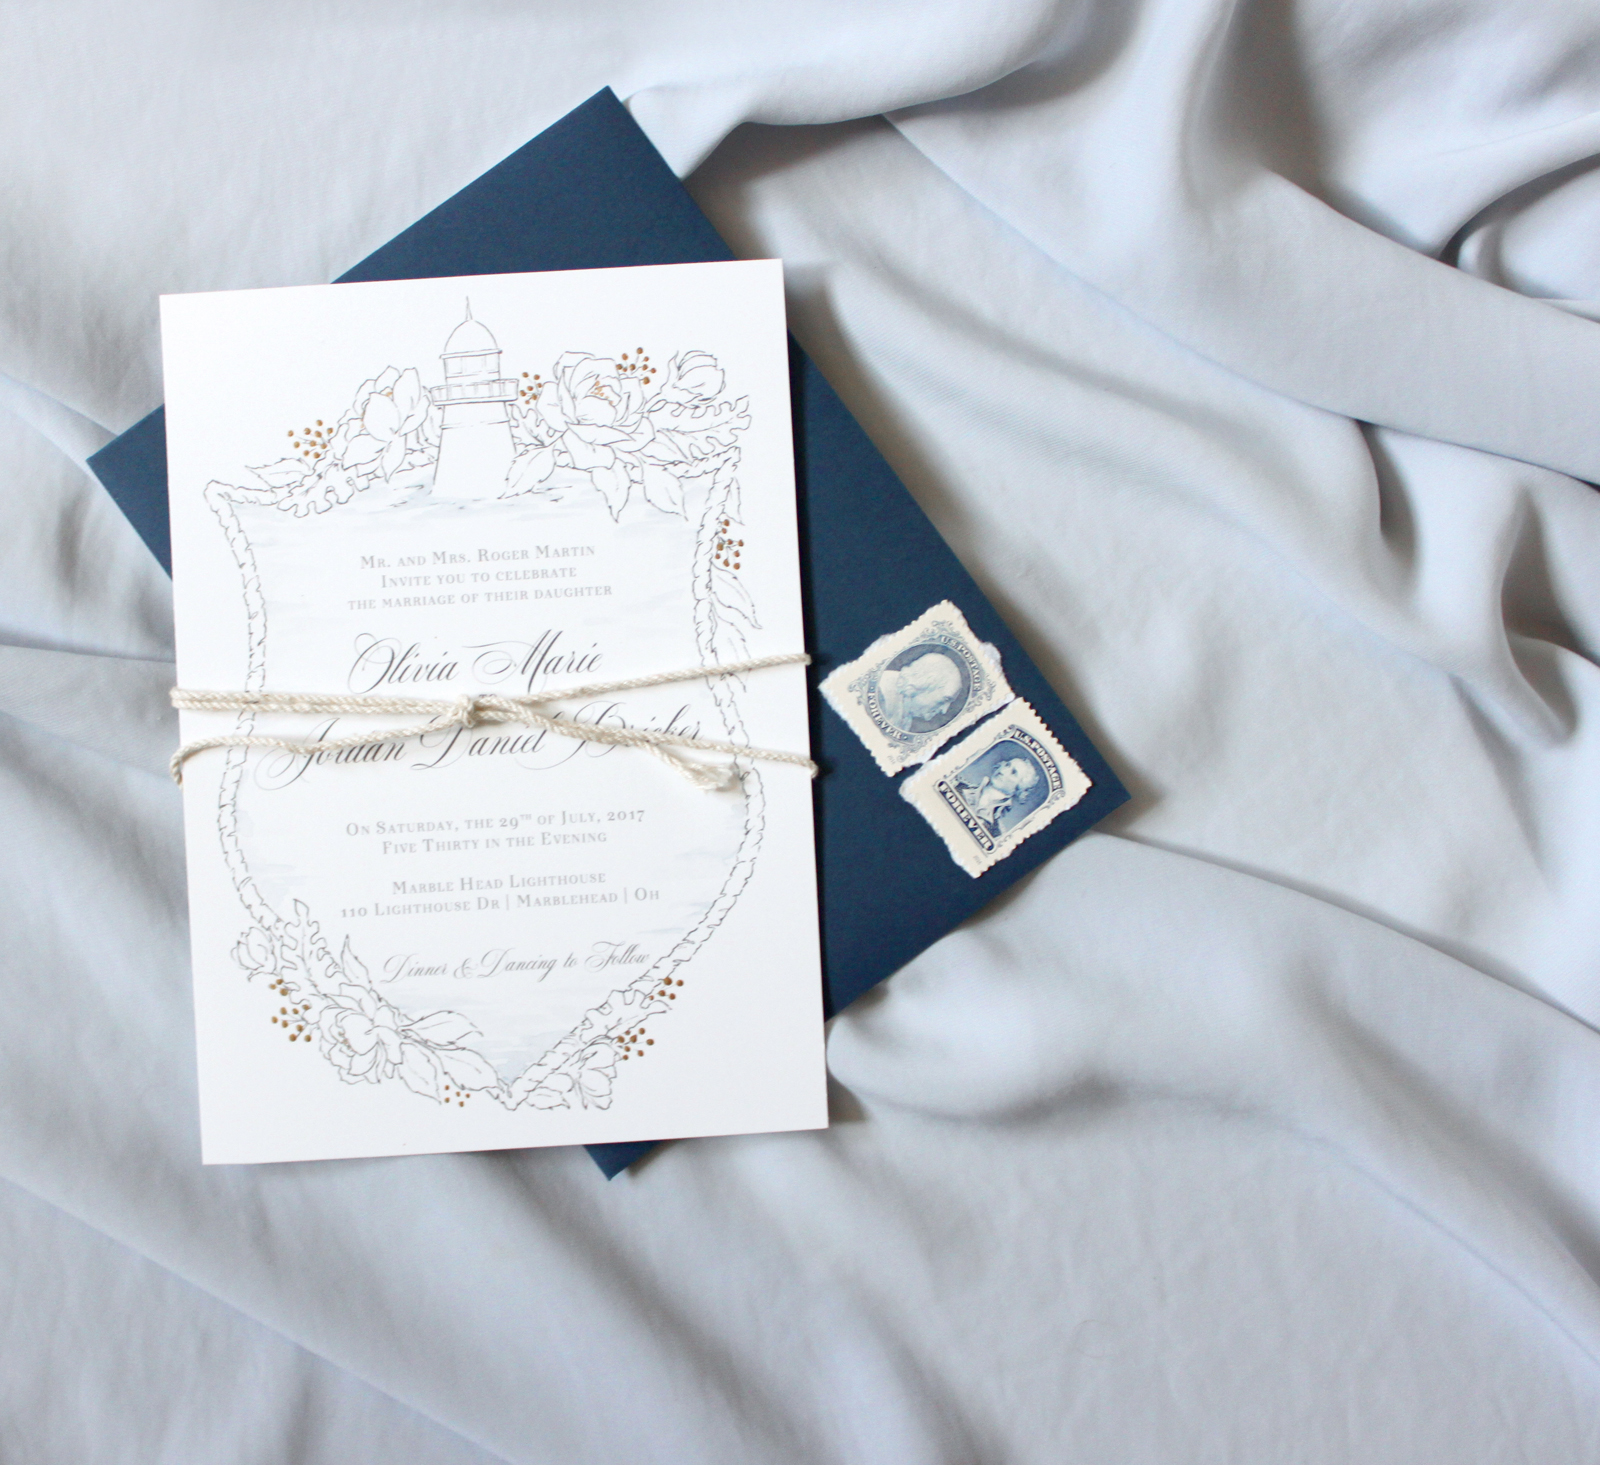 Marblehead Lighthouse Invitation.  Nautical wedding Invitations inspired by the Marblehead lighthouse off of Lake Erie for a wedding venue.  Blushed Design, Wedding Invitations and Fine Art Portraits